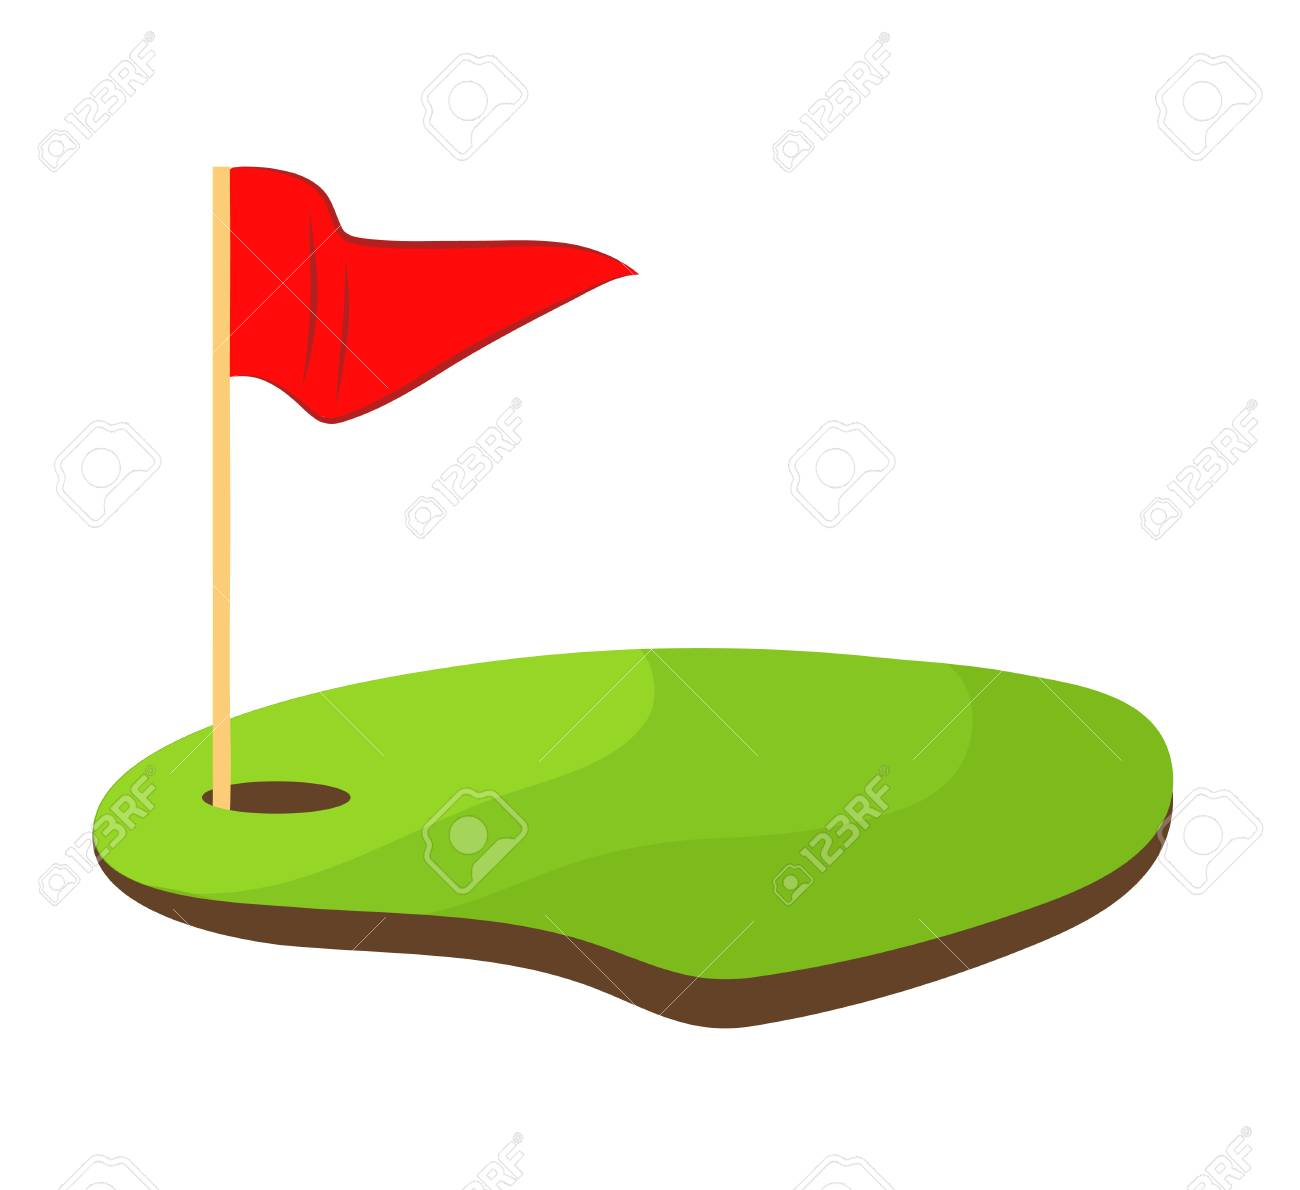 Golf hole with red flag stock vector illustration design.